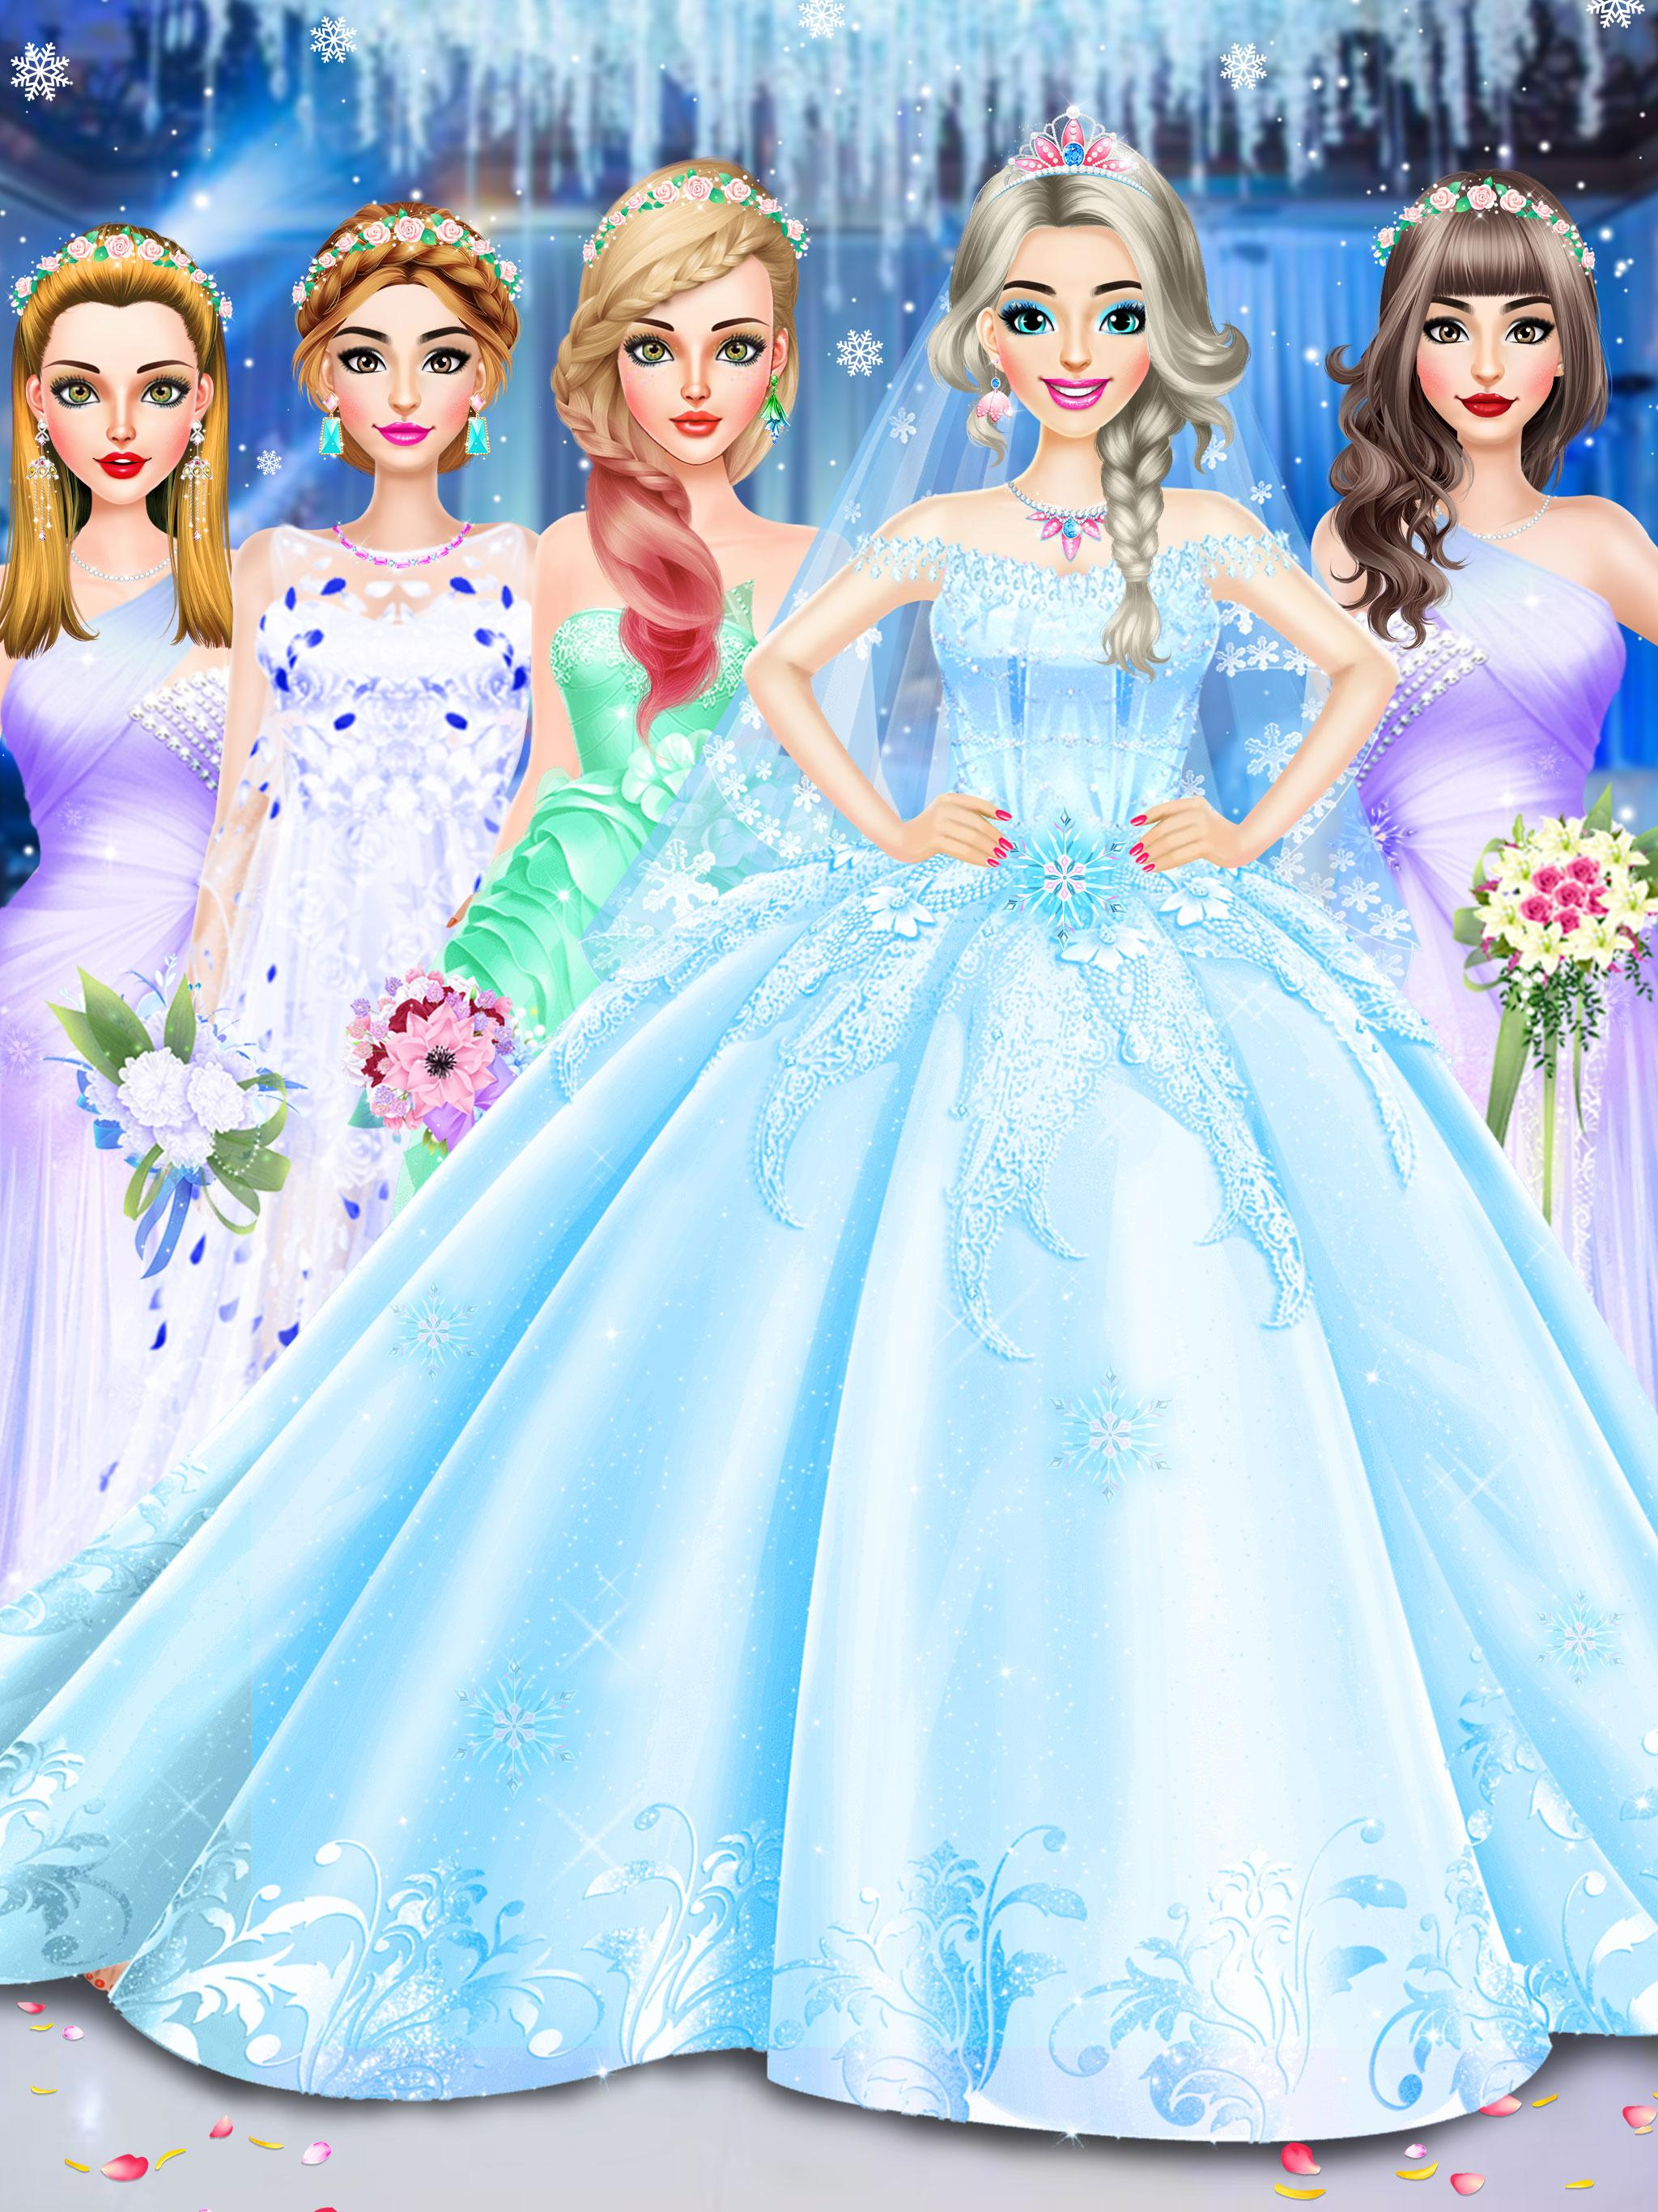 Ice Princess Wedding Dress Up For Android Apk Download